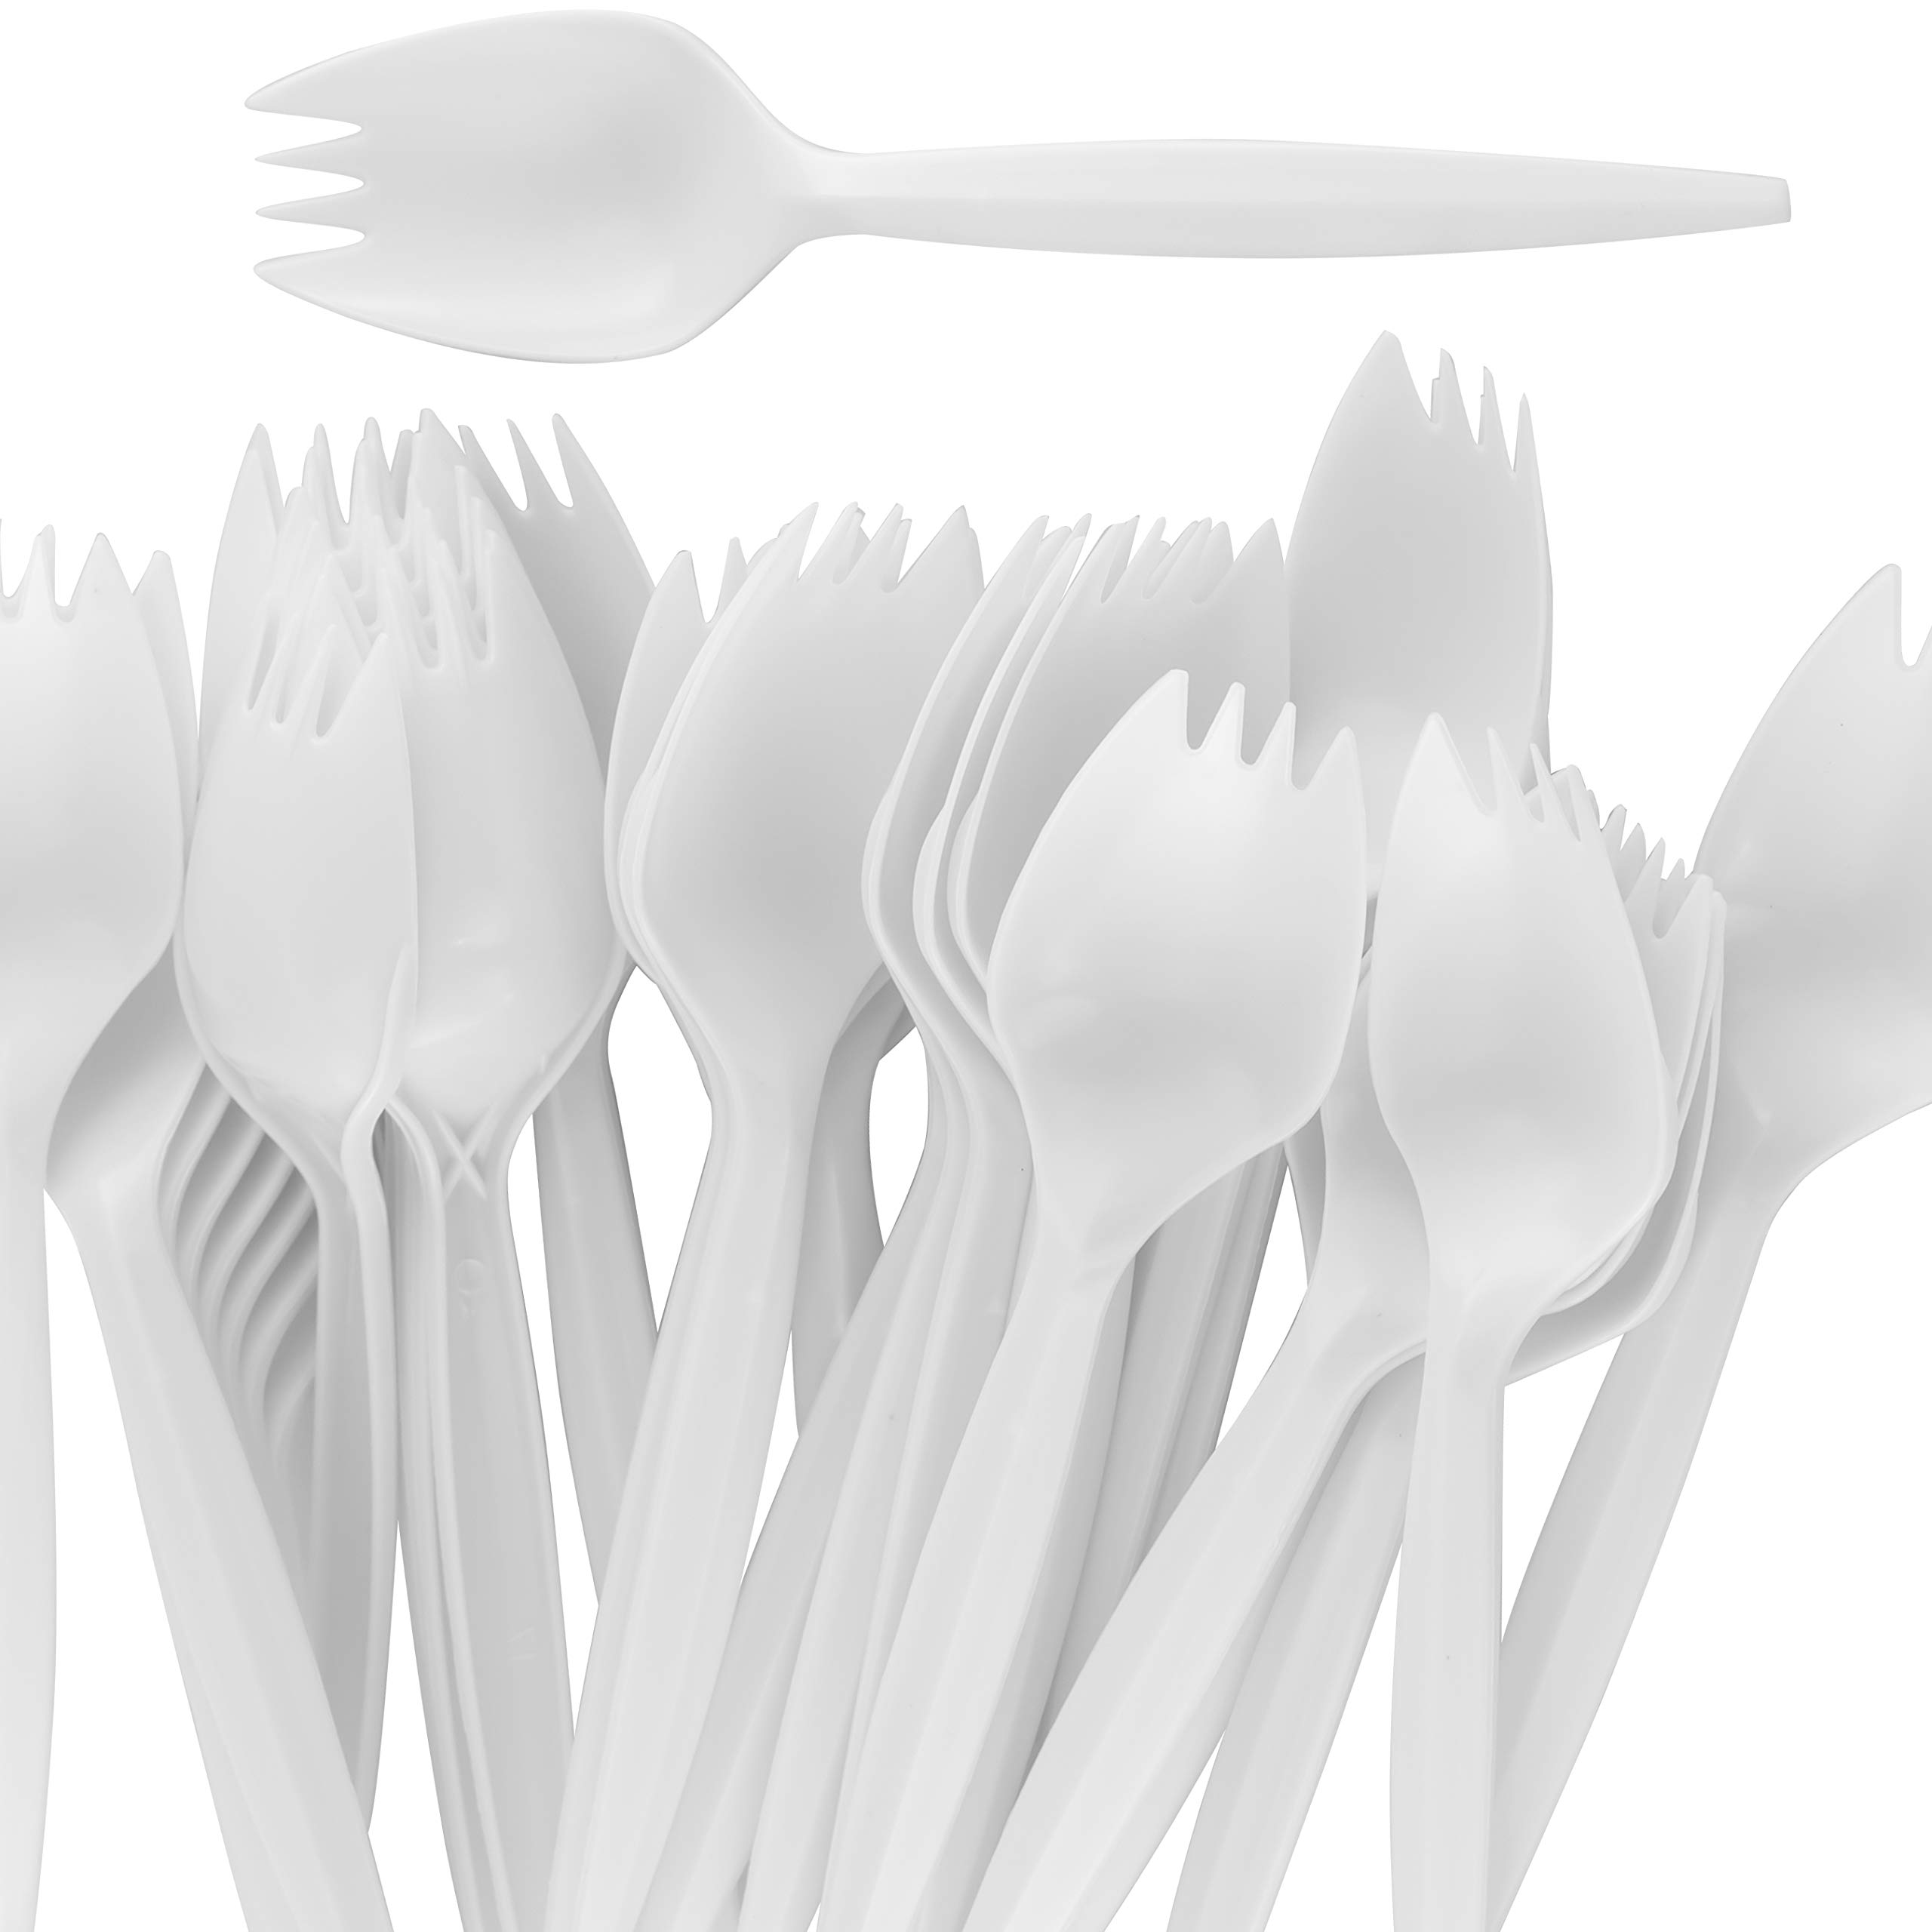 BPA-Free White Disposable Sporks 100 Pk. Recyclable, Eco-Friendly and Kid-Safe 2-in-1 Utensils Built Strong to Last Large Meals. Great for School Lunch, Picnics or Restaurant and Party Supply by Avant Grub